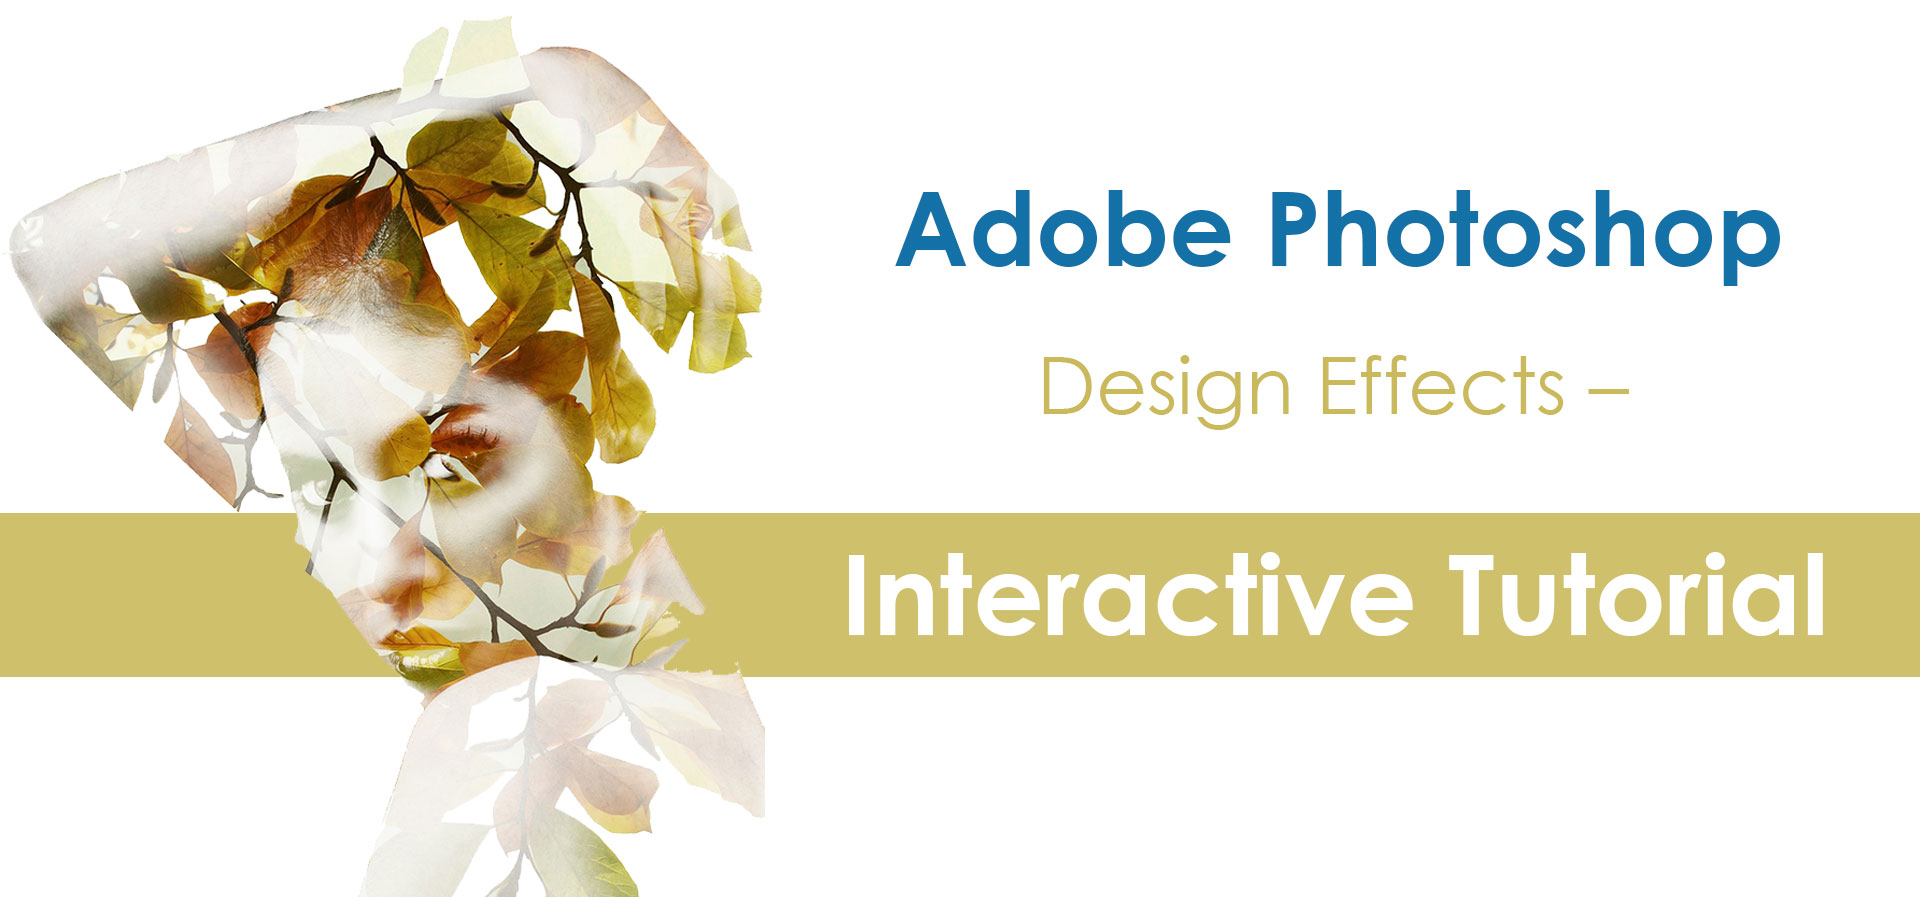 Adobe-Photoshop-Design-Effects-Interactive-Tutorial